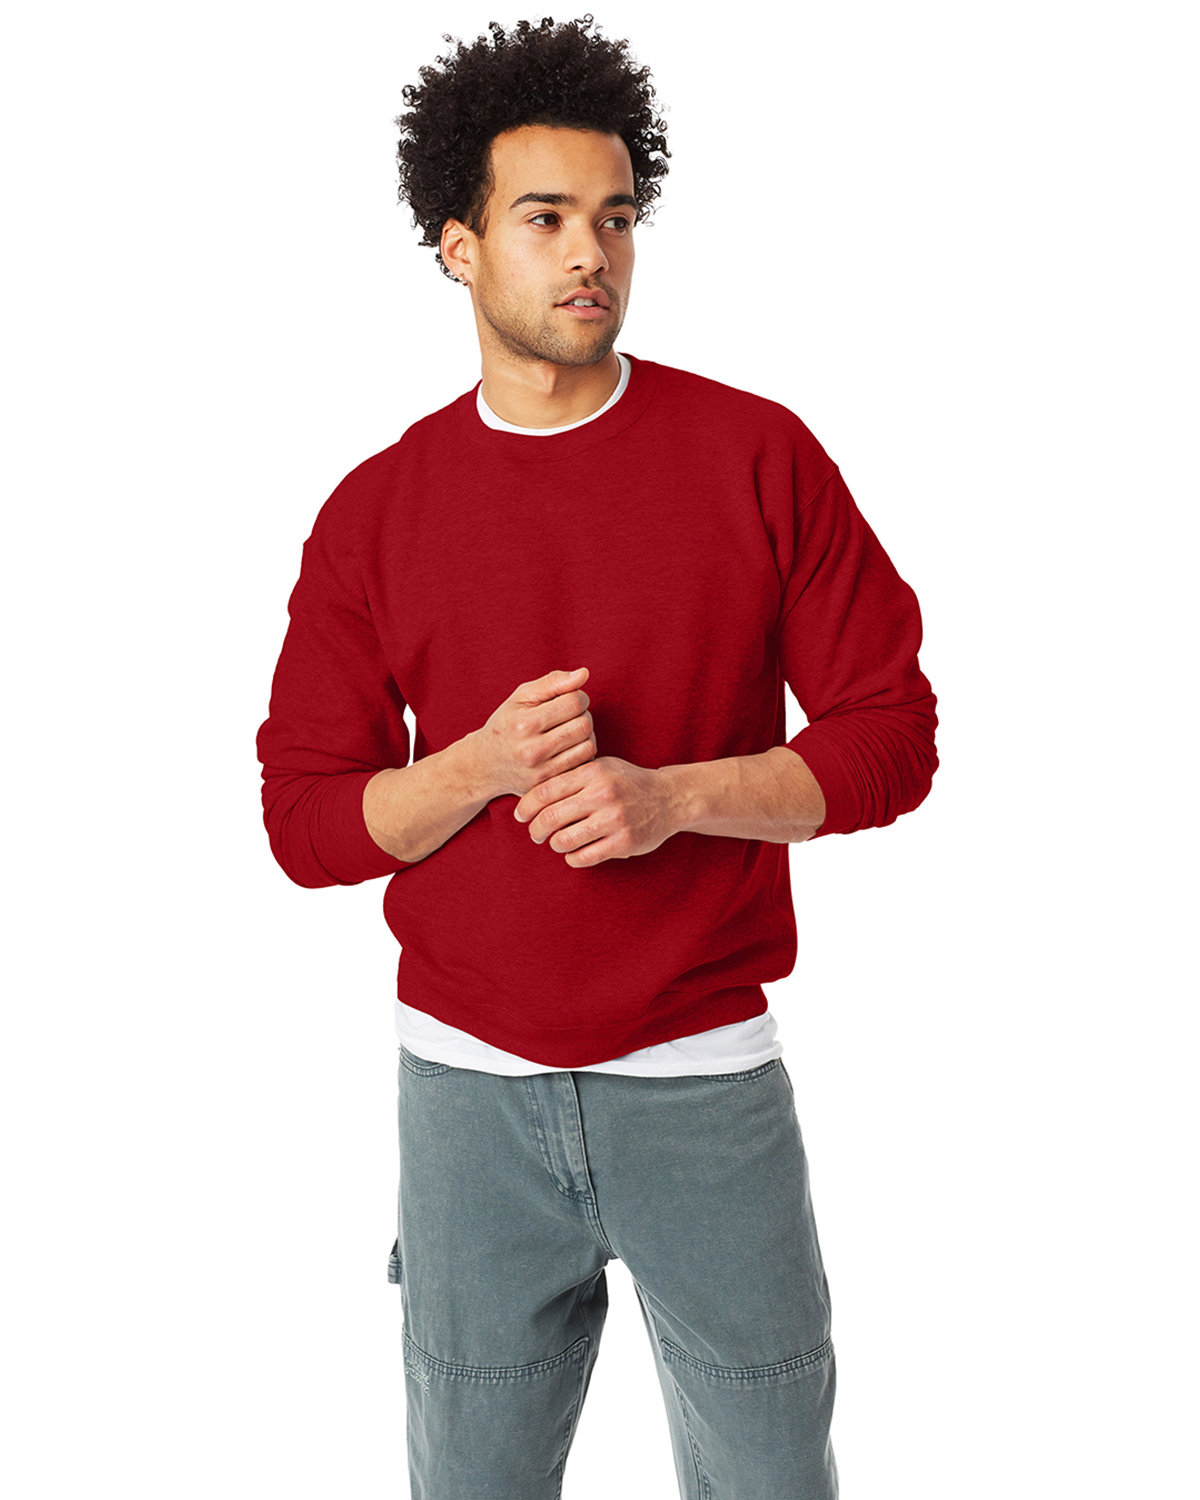 Hanes Unisex 7.8 oz., Ecosmart® 50/50 Crewneck Sweatshirt RED PEPPER HTHR